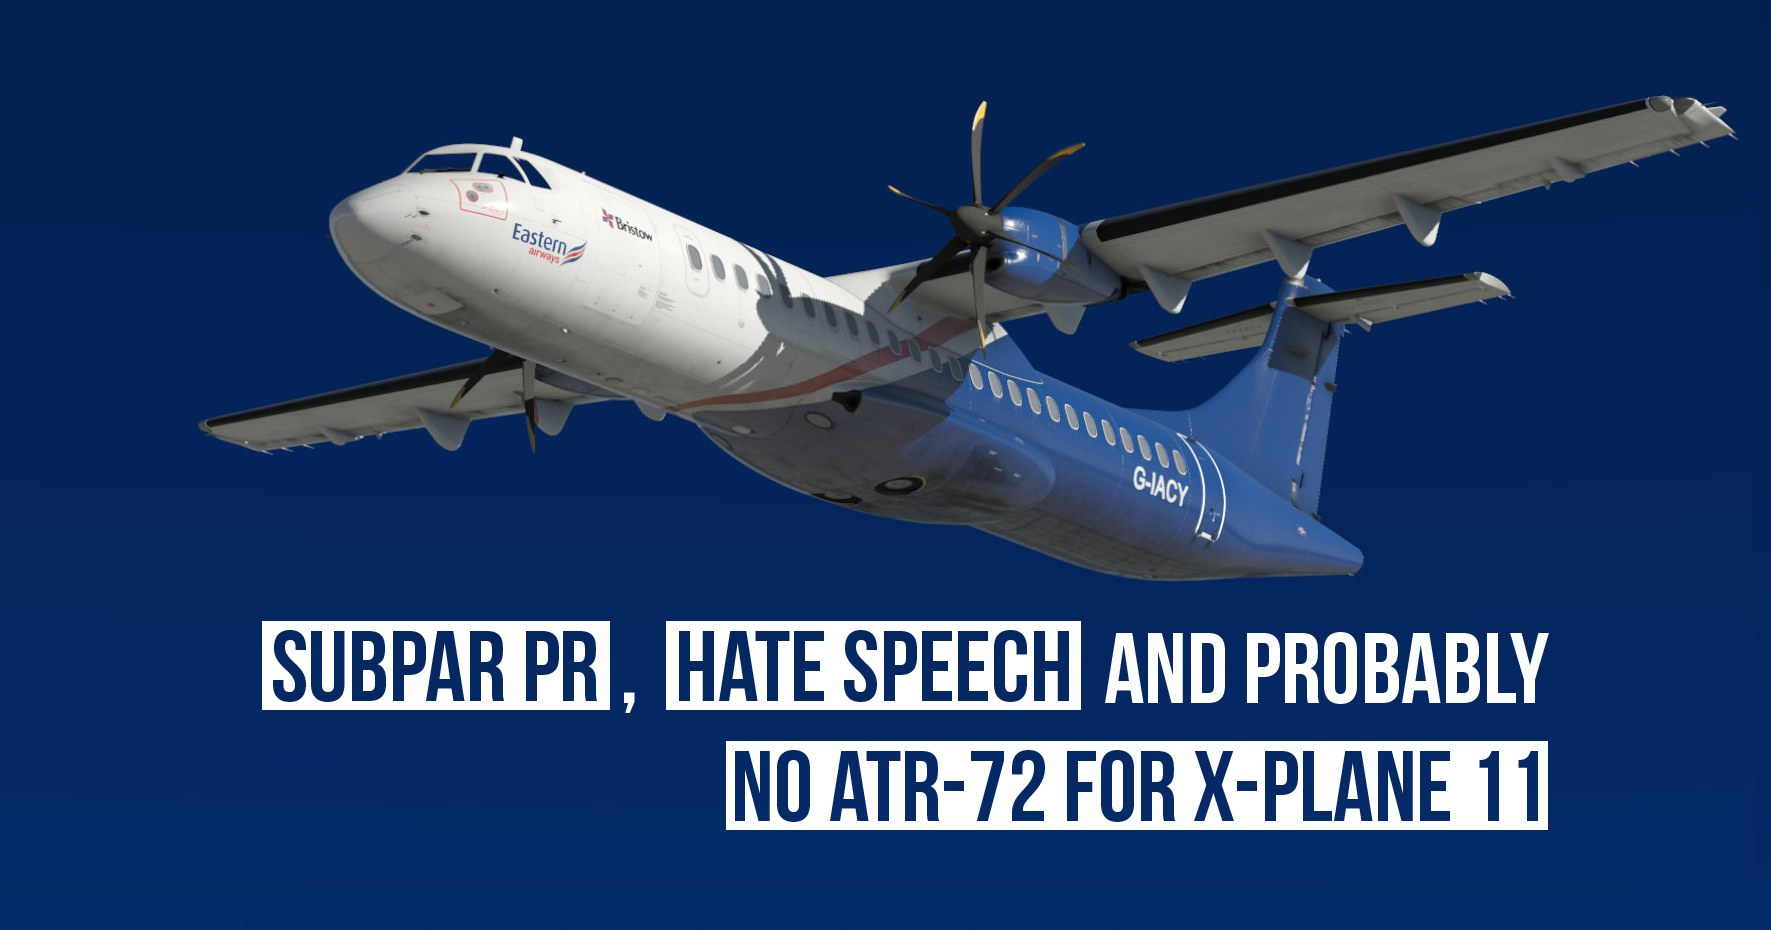 The debacle with the Milviz ATR 72 for X-Plane 11